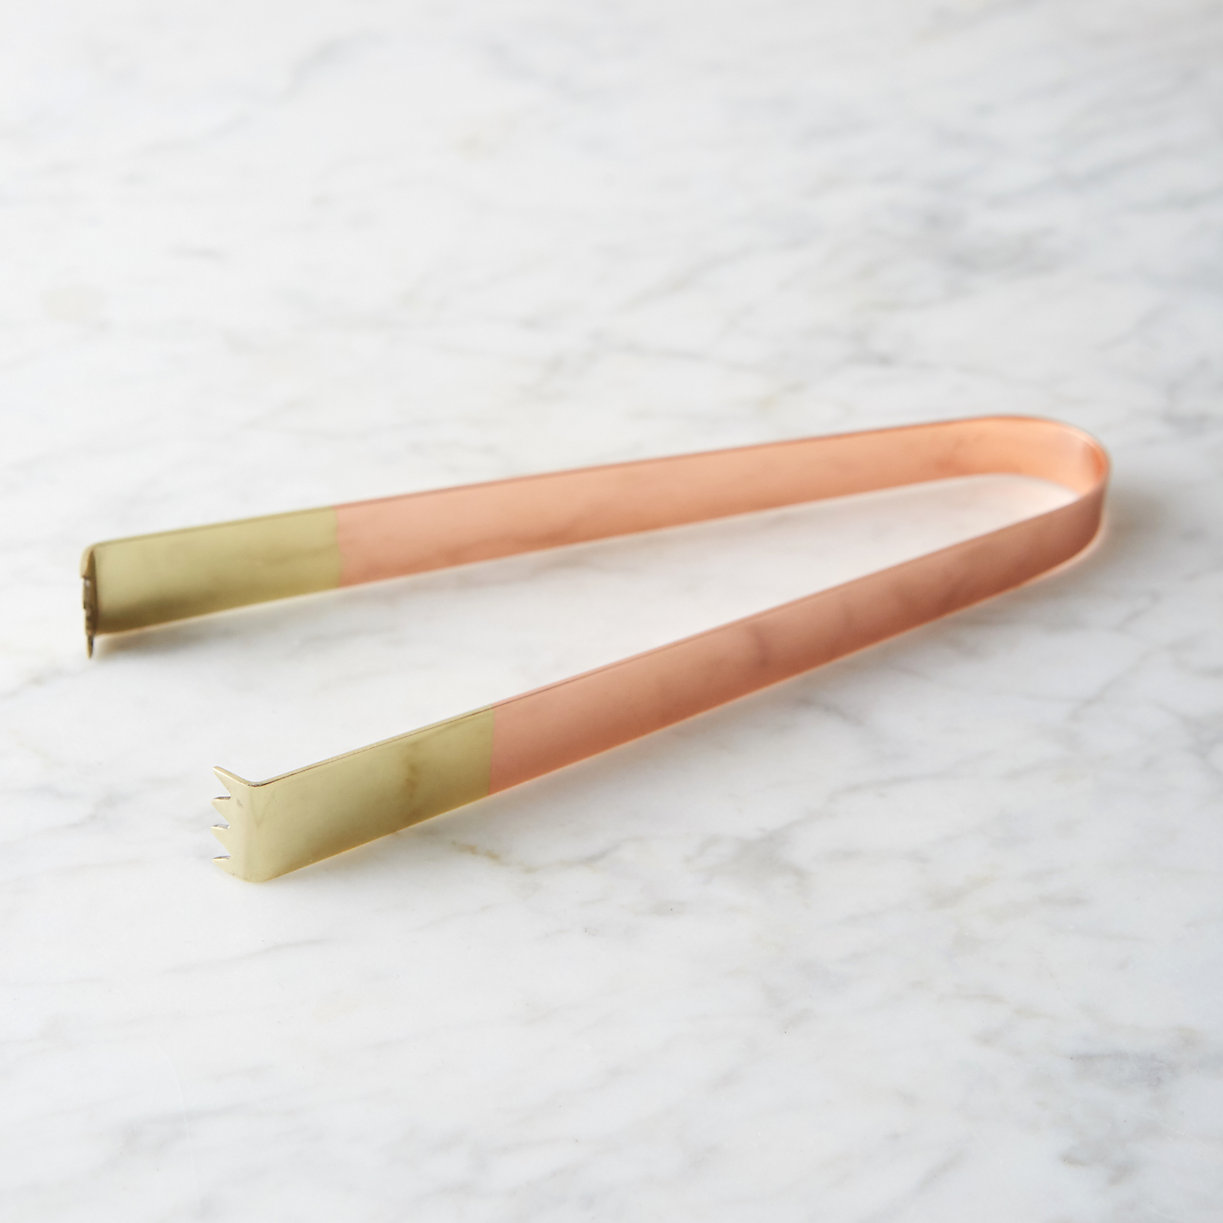 D D Tongs: Copper & Brass Ice Tongs